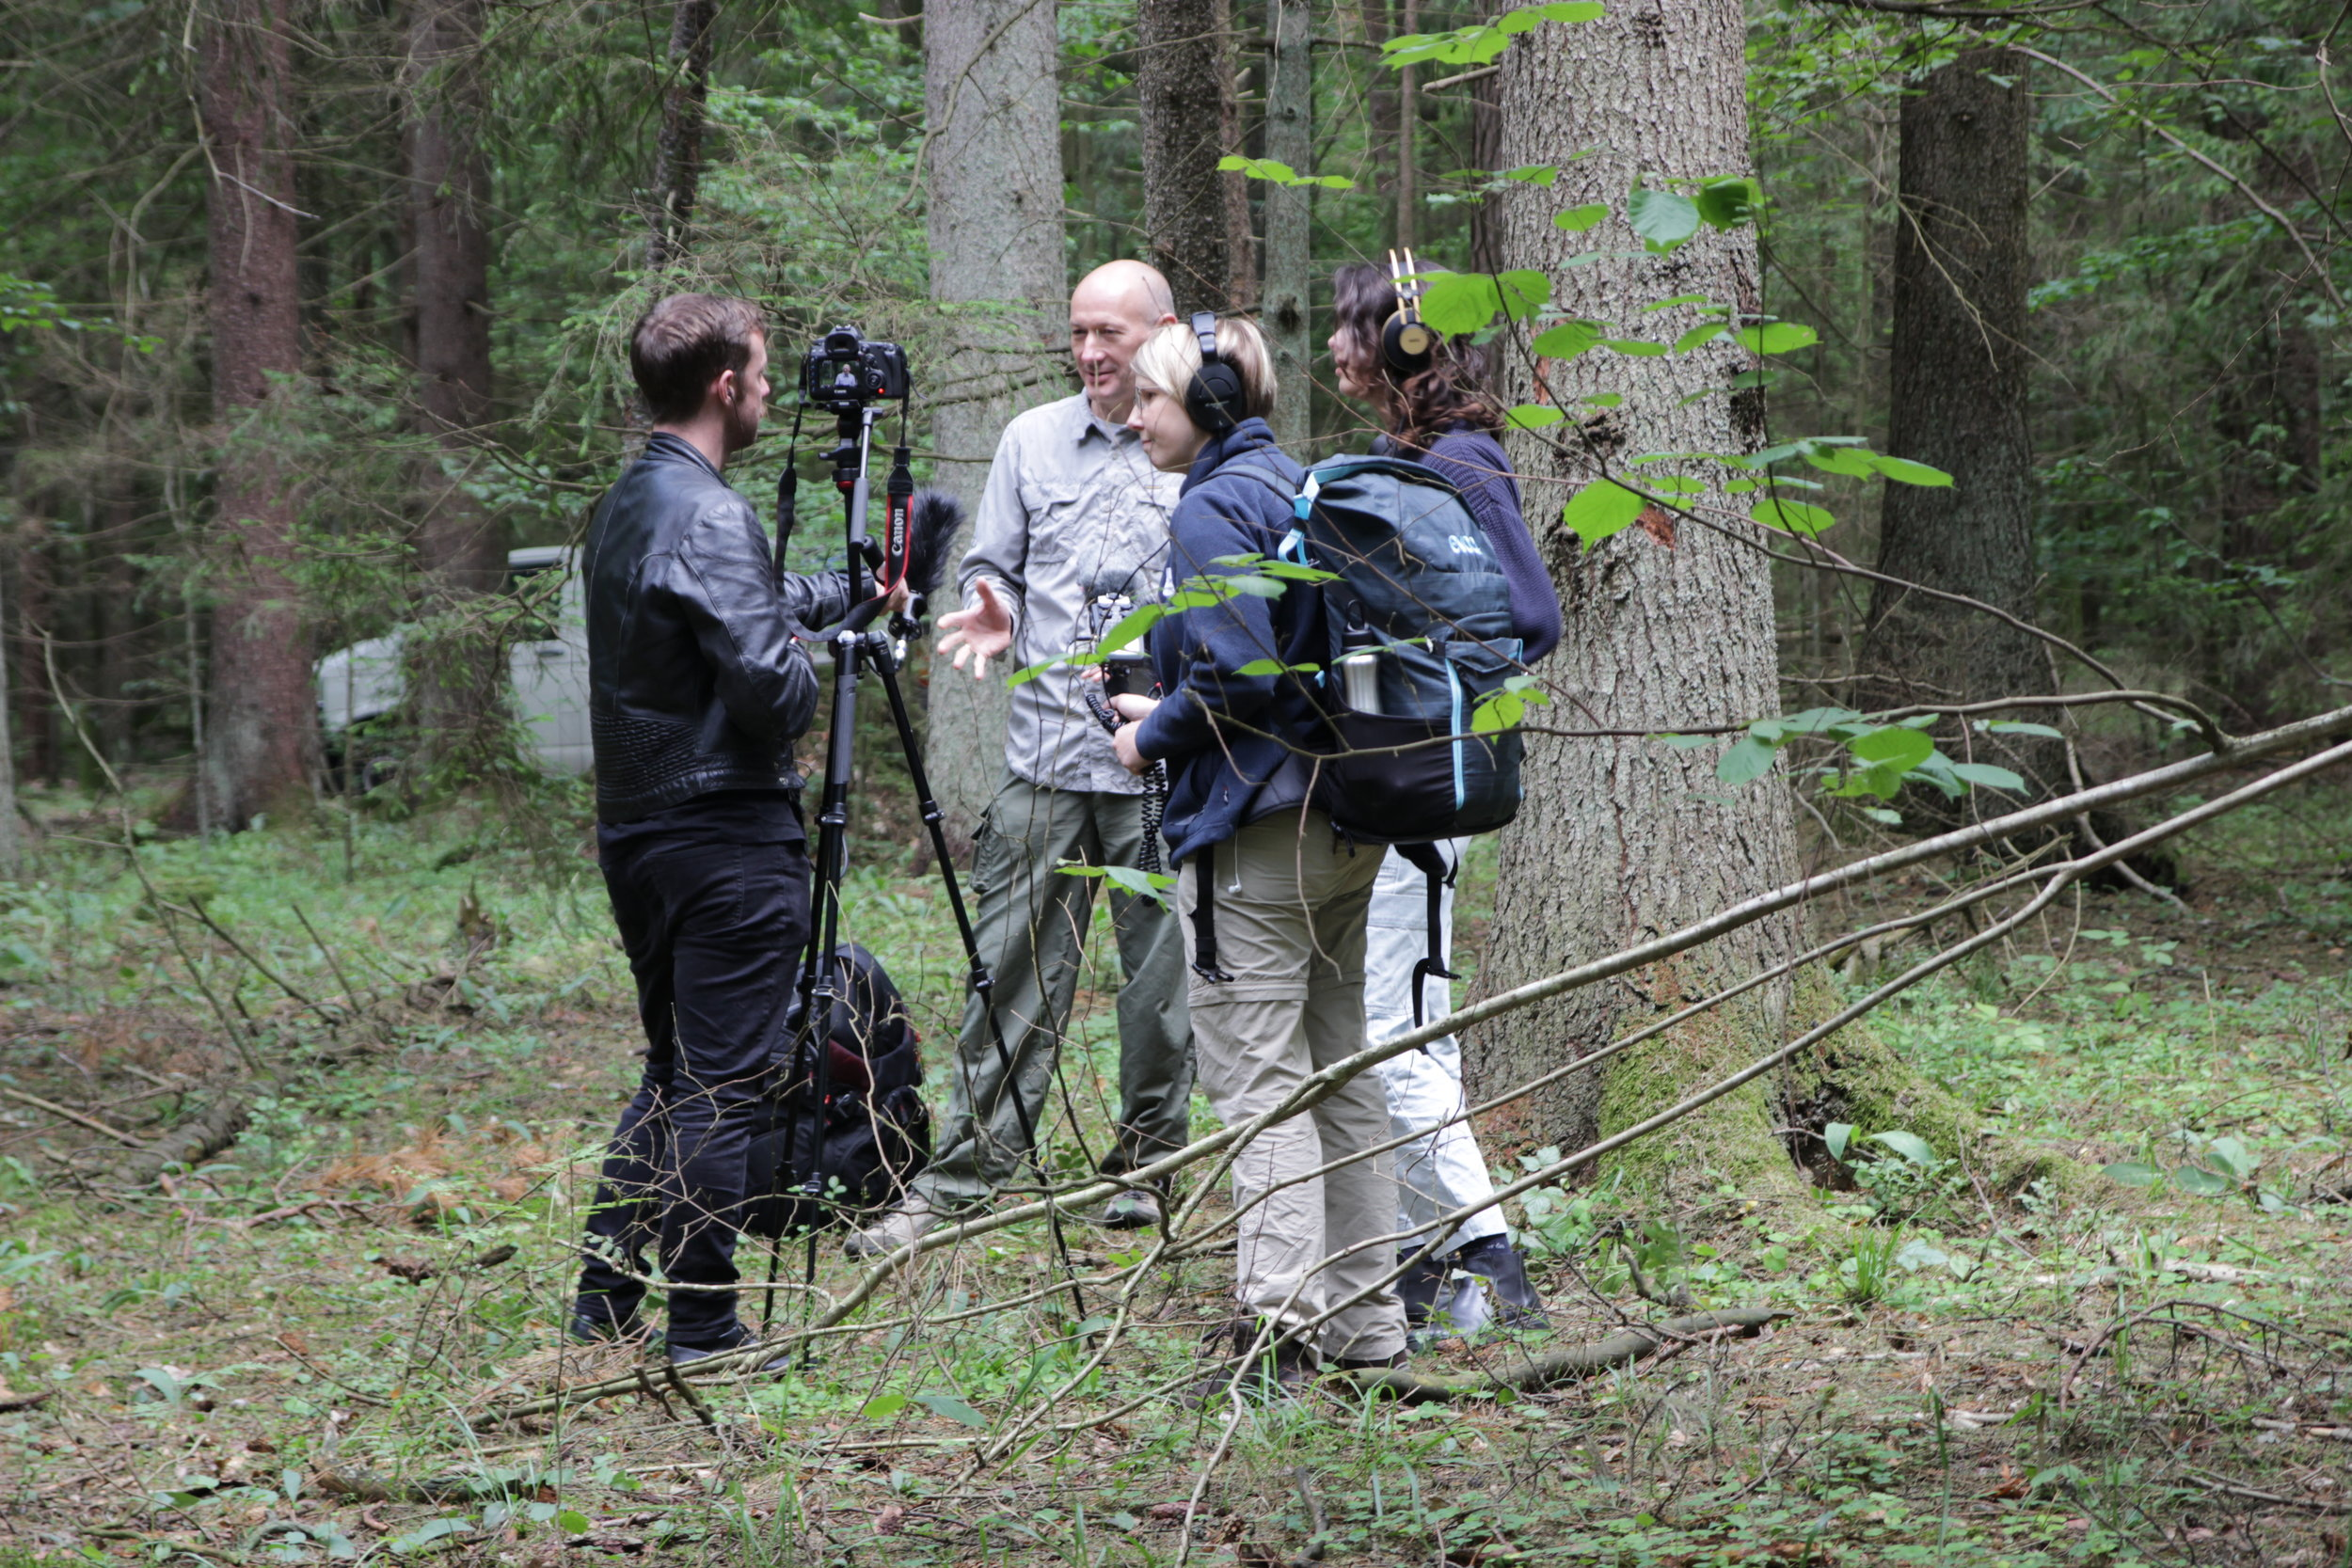 sound-reporting-co-lab-in-bialowieza-poland_48323489801_o copy.jpg